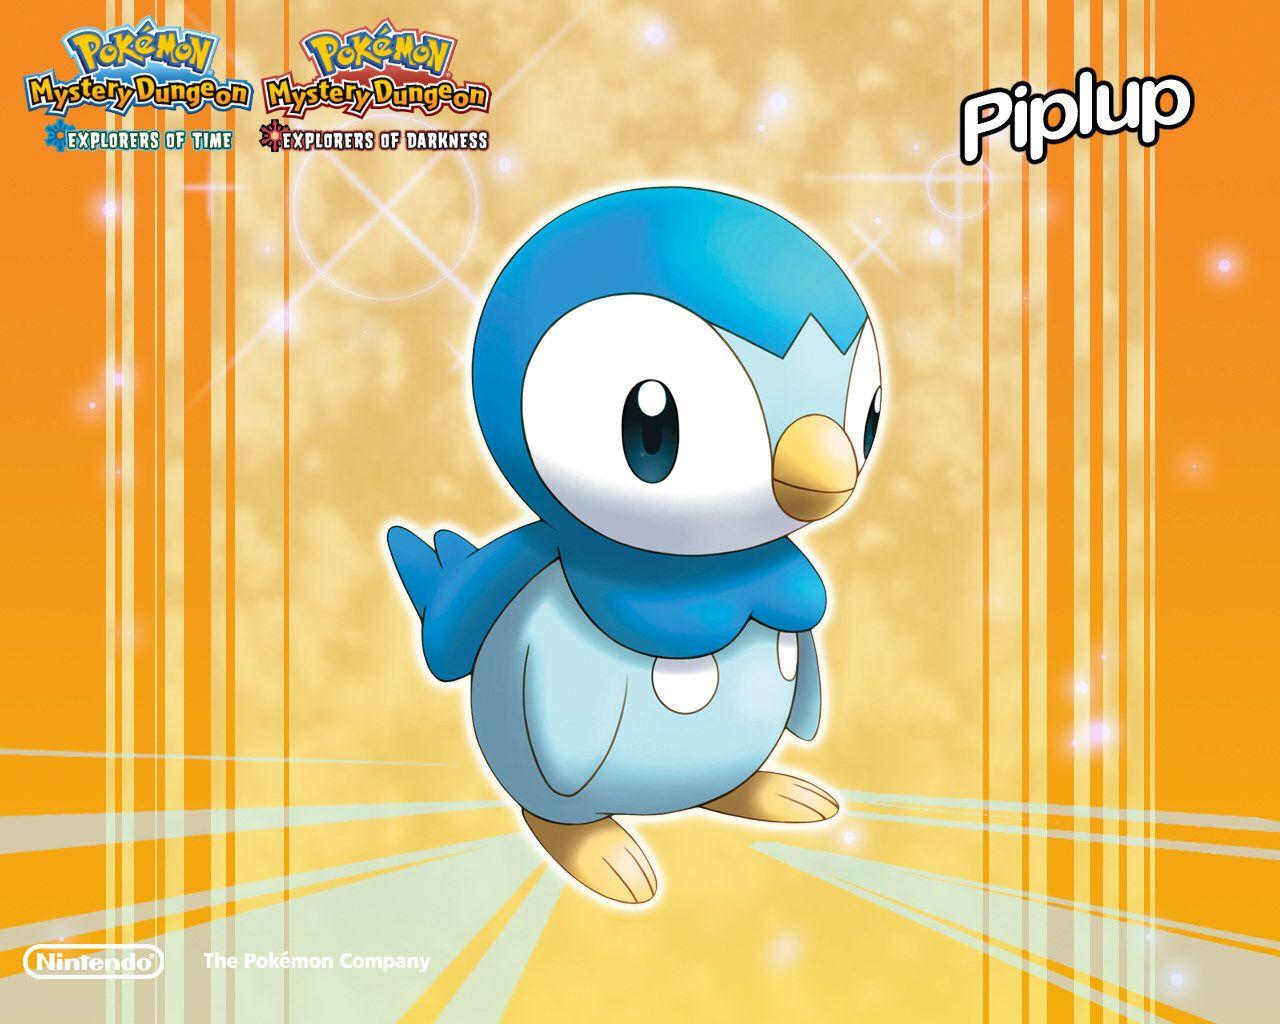 Piplup Wallpaper at Wallpaperist